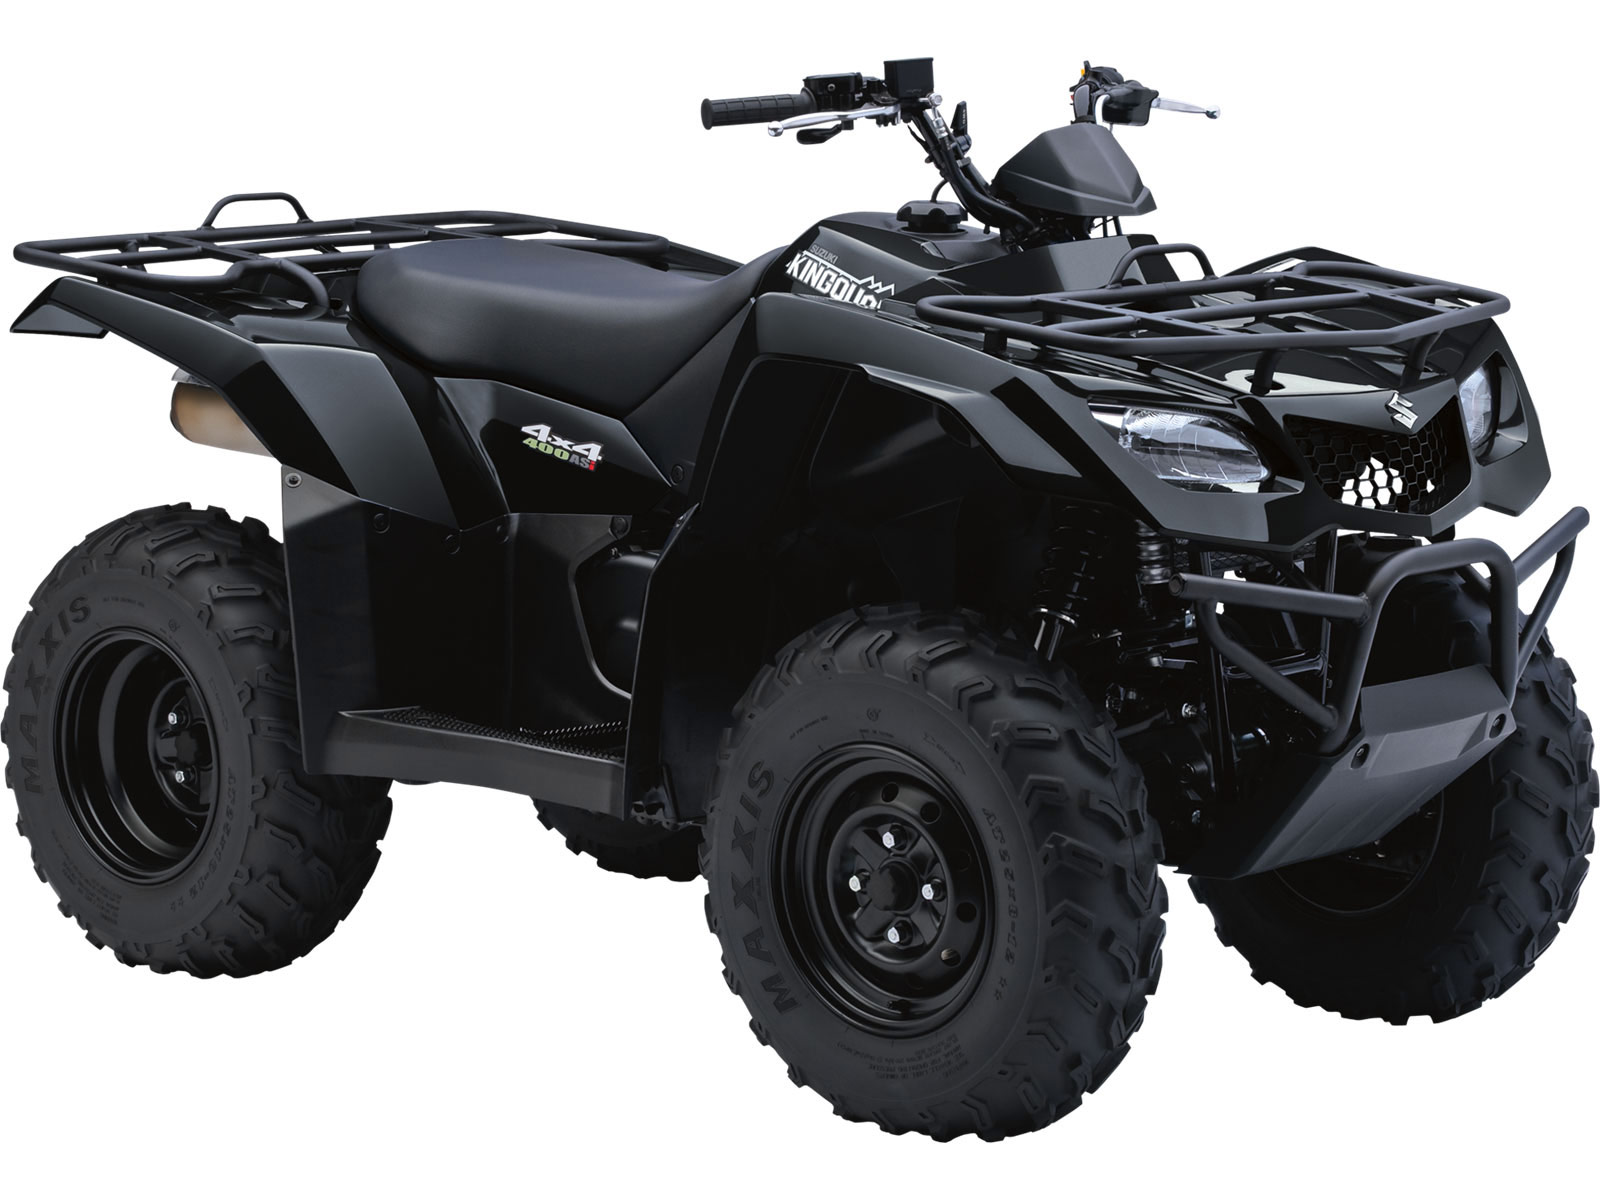 Suzuki kingquad photo - 1